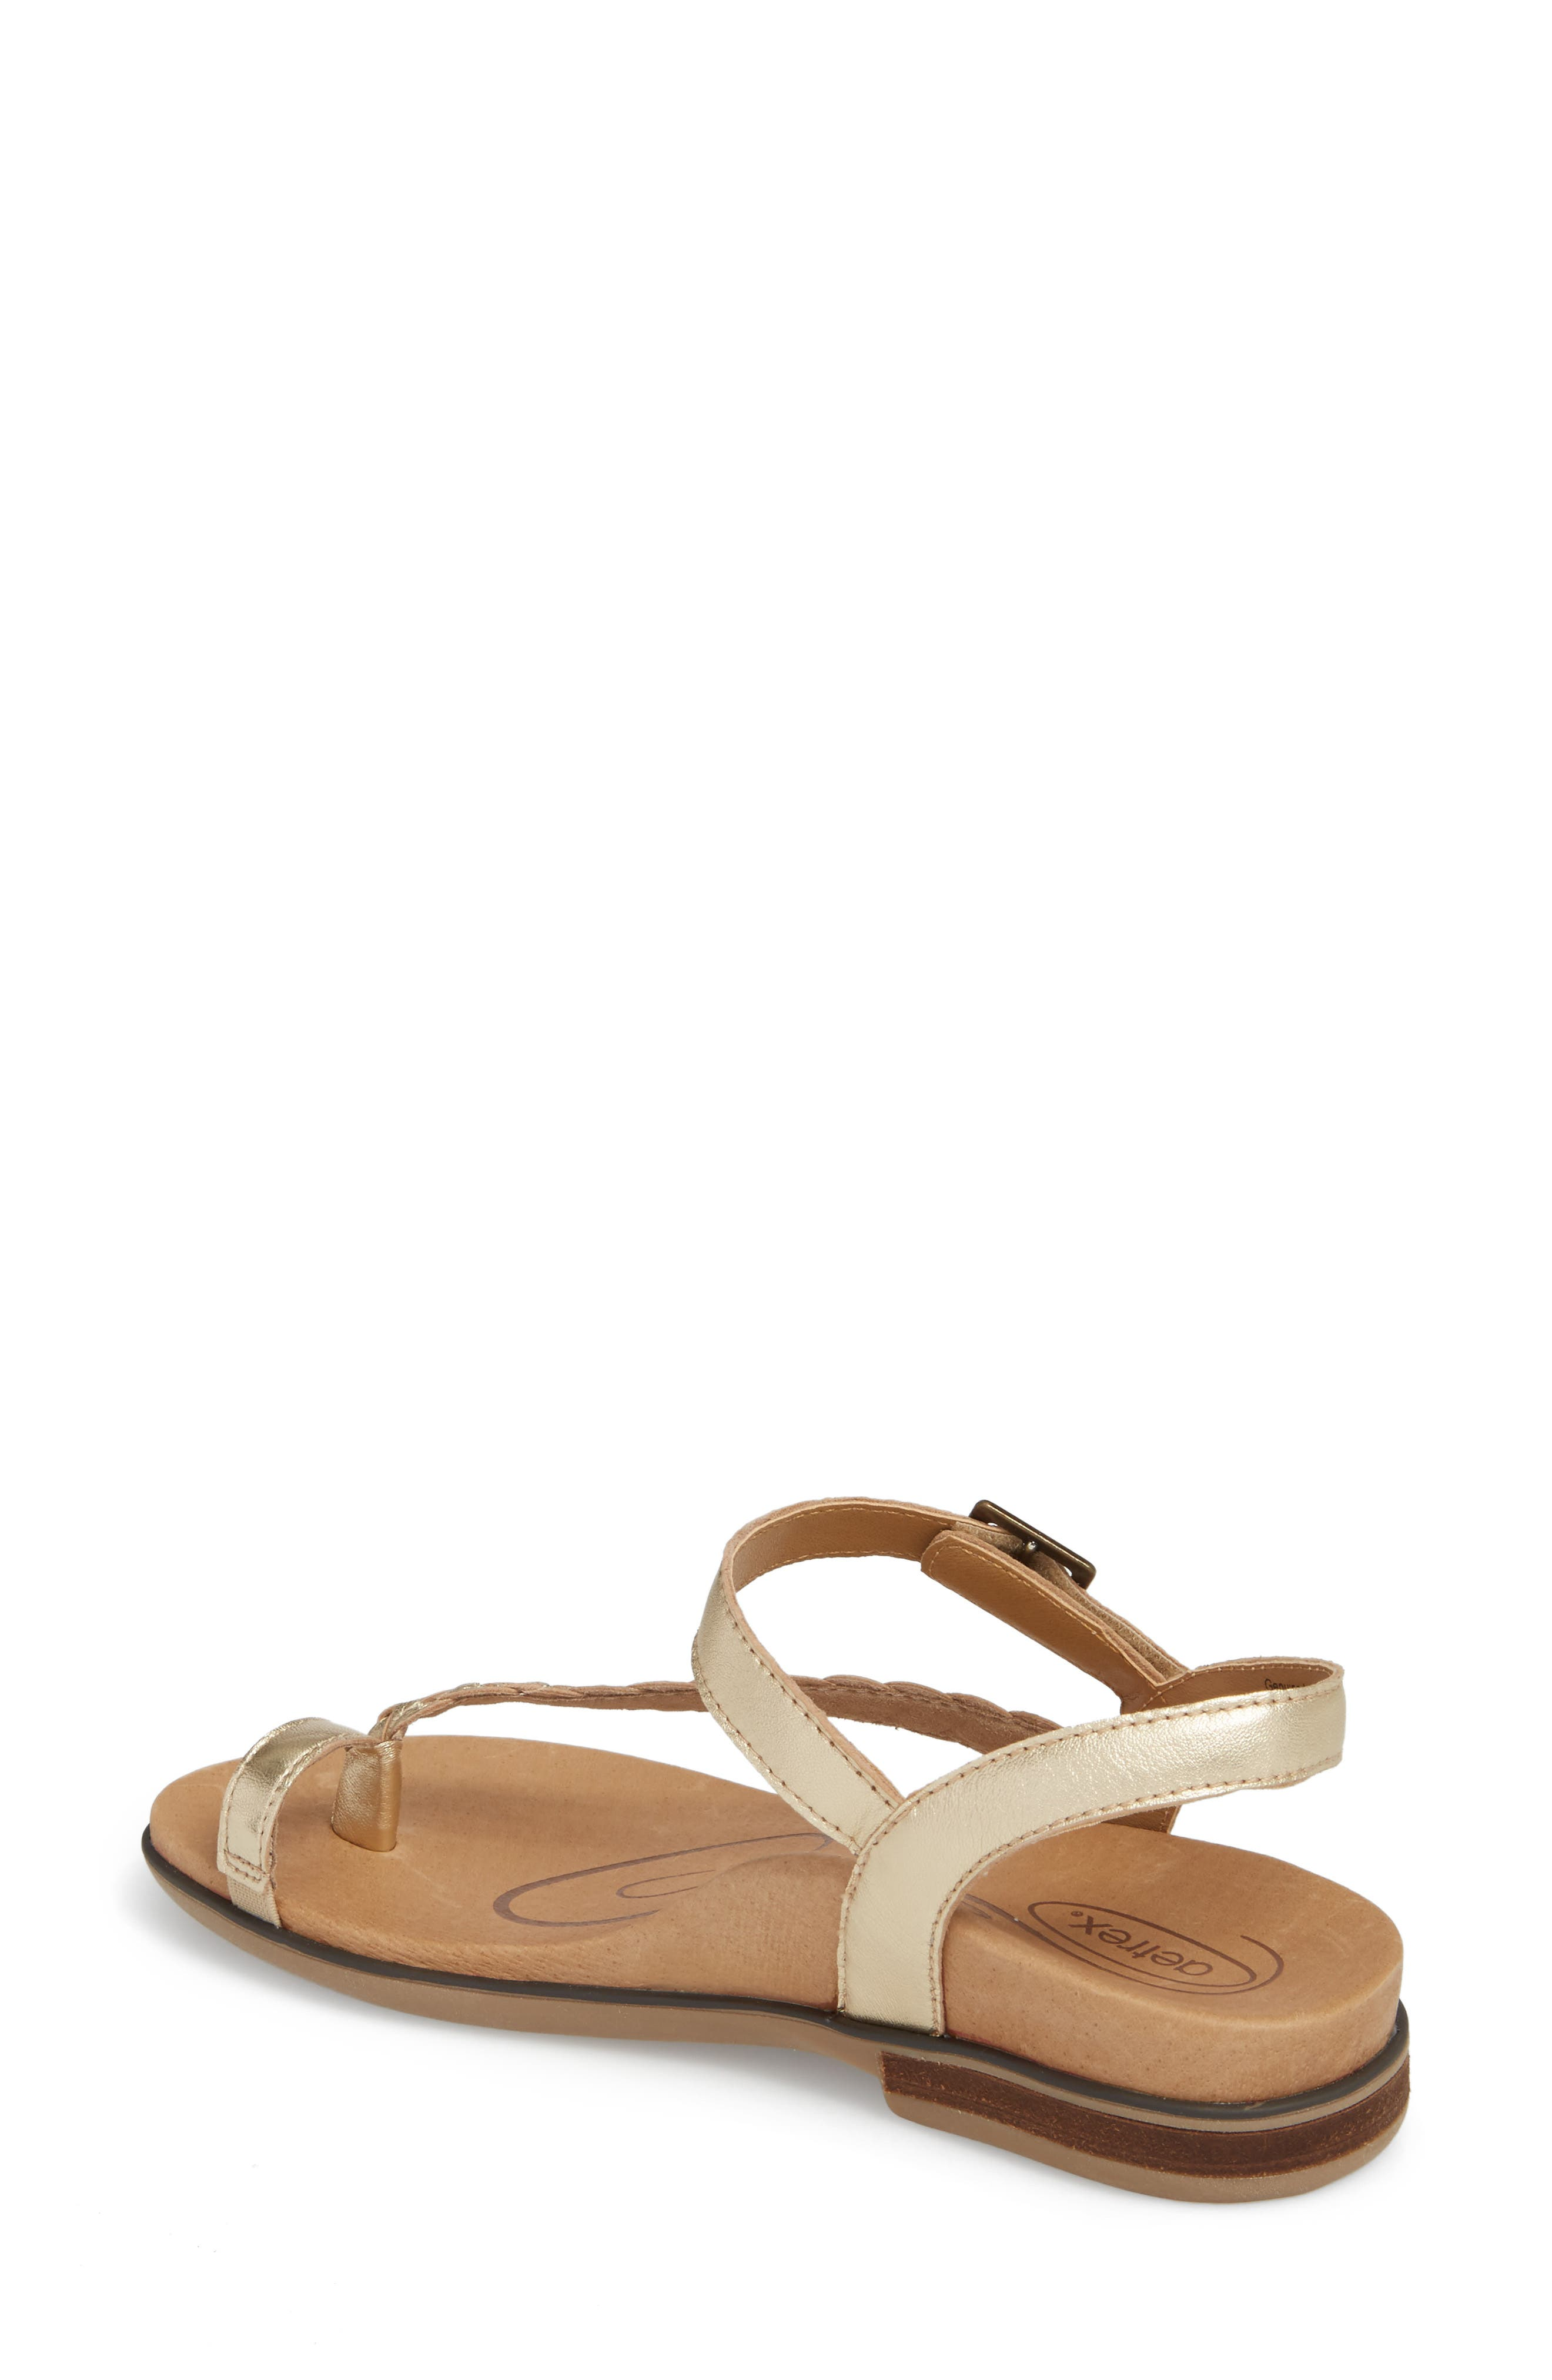 Evie Braided Strap Sandal,                             Alternate thumbnail 2, color,                             Gold Leather